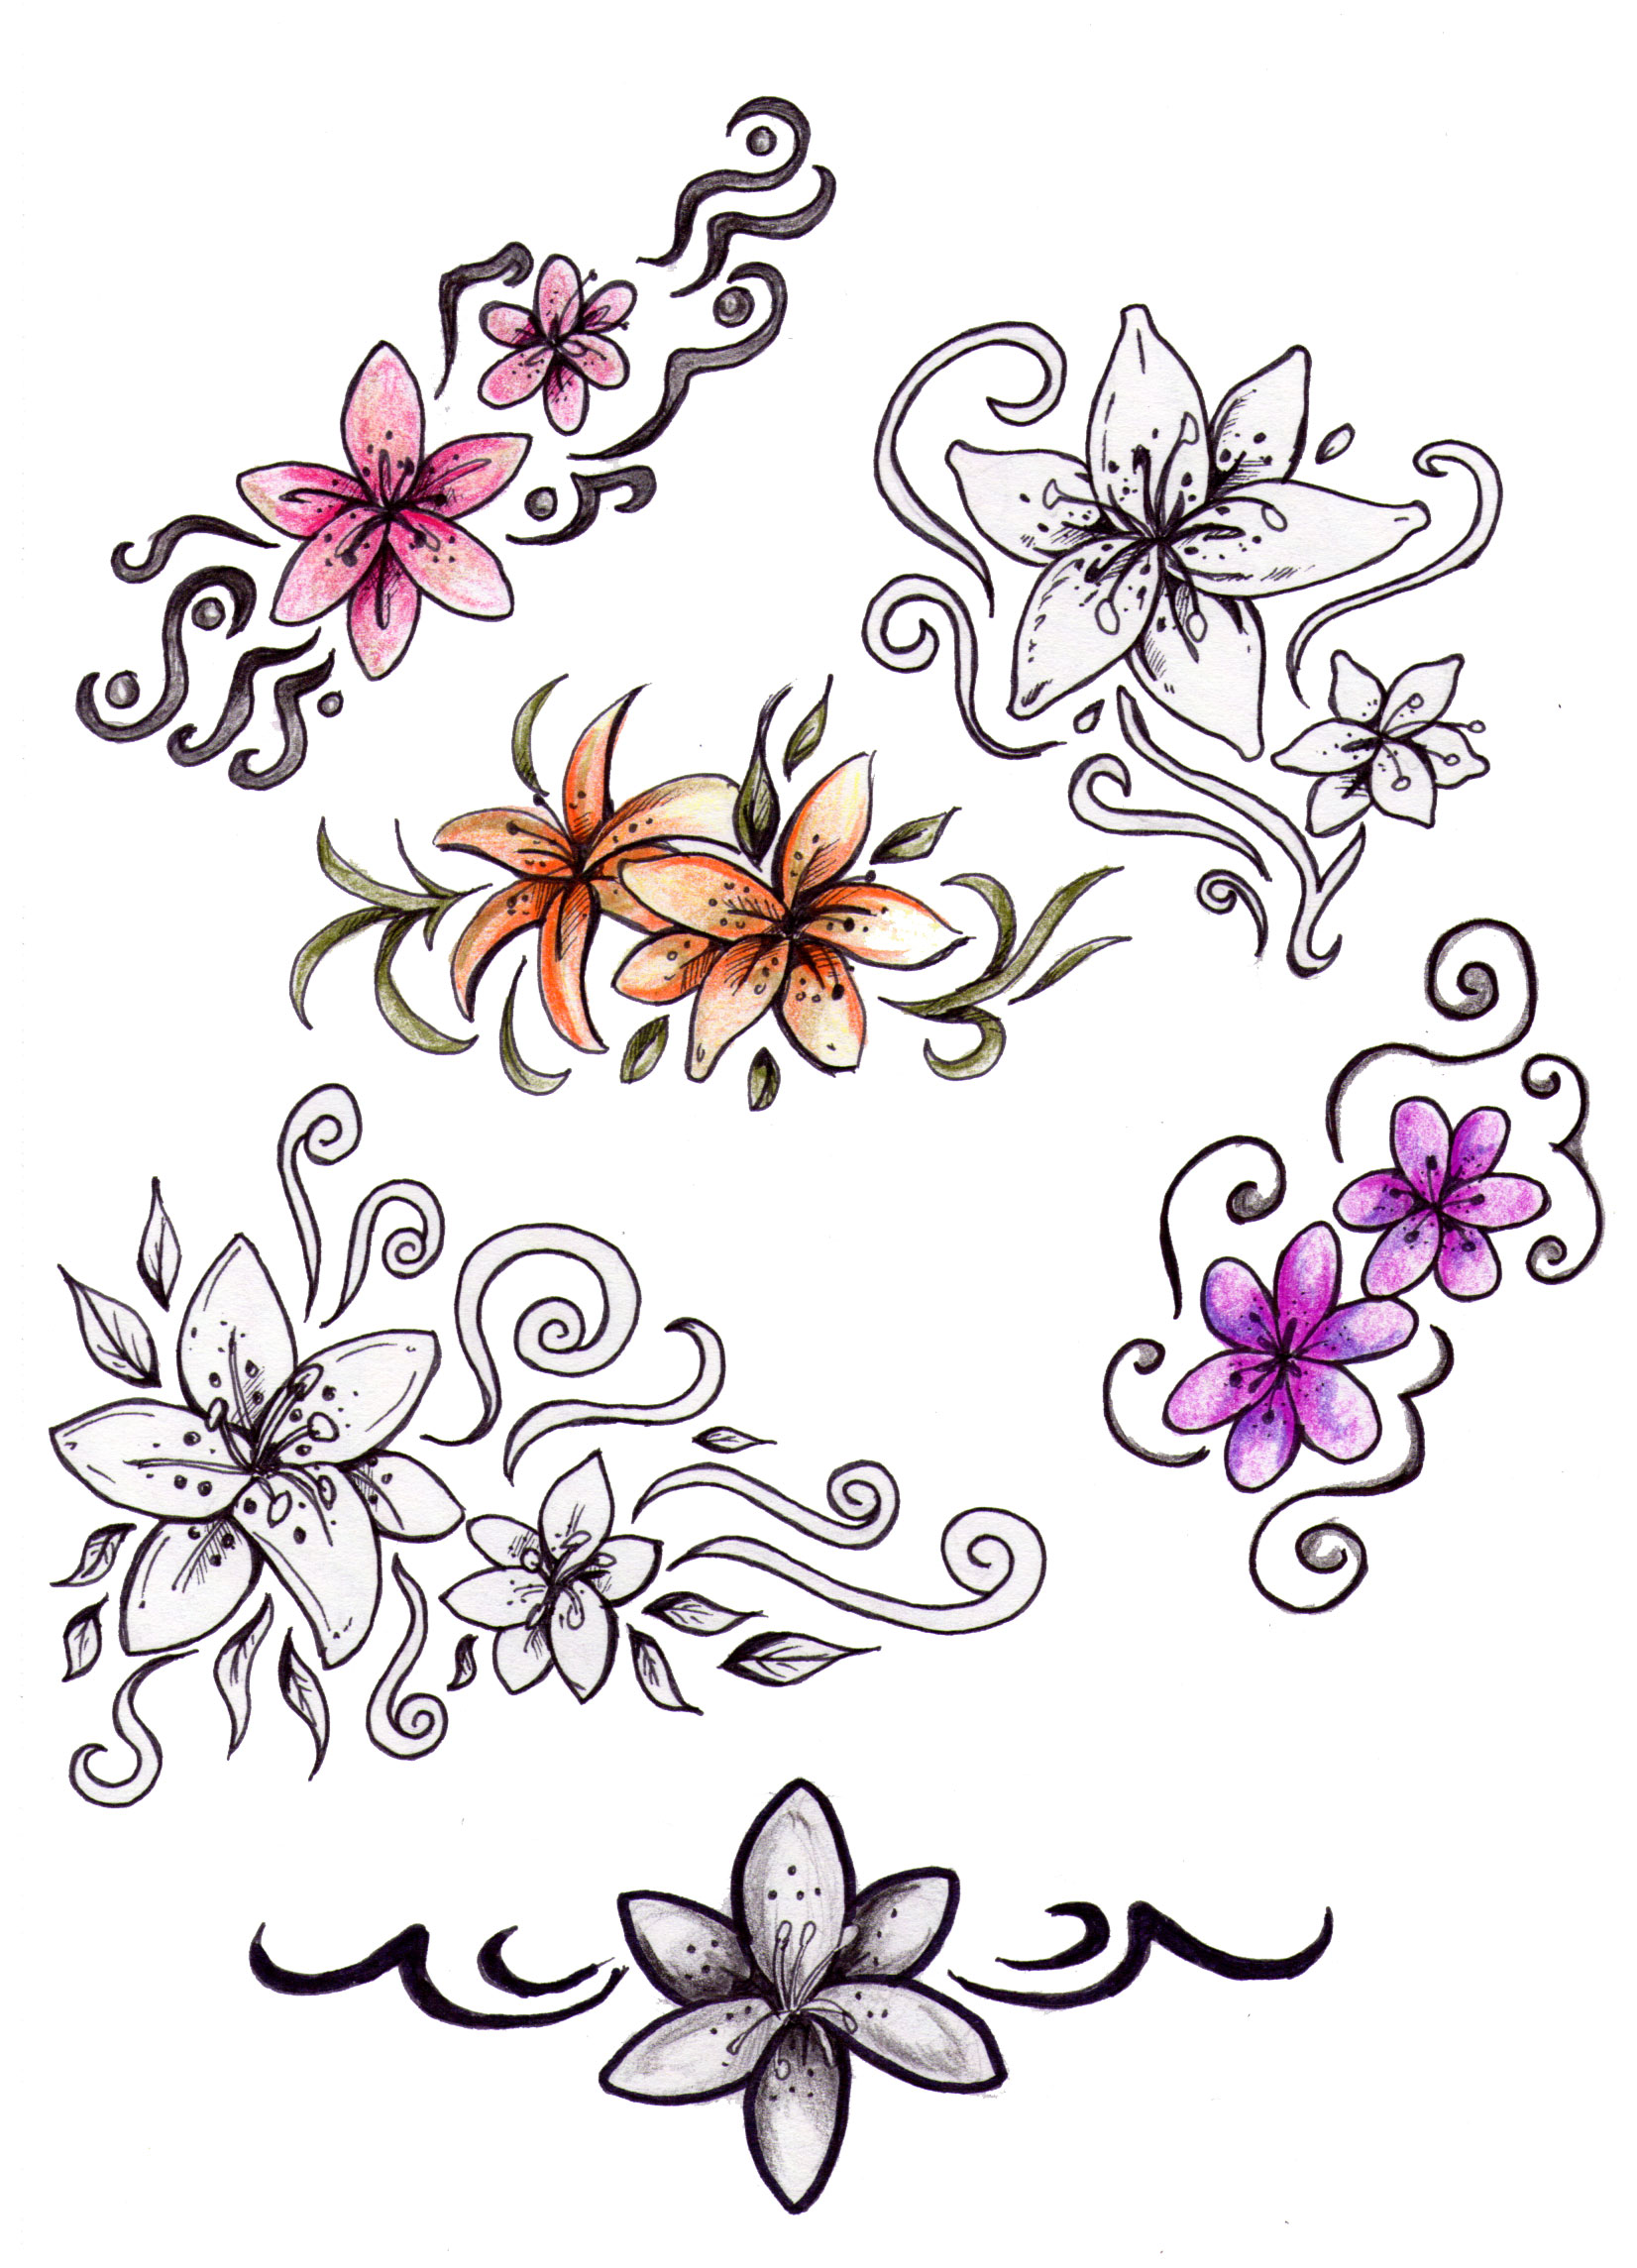 Flower Tattoo Designs And Their Meanings